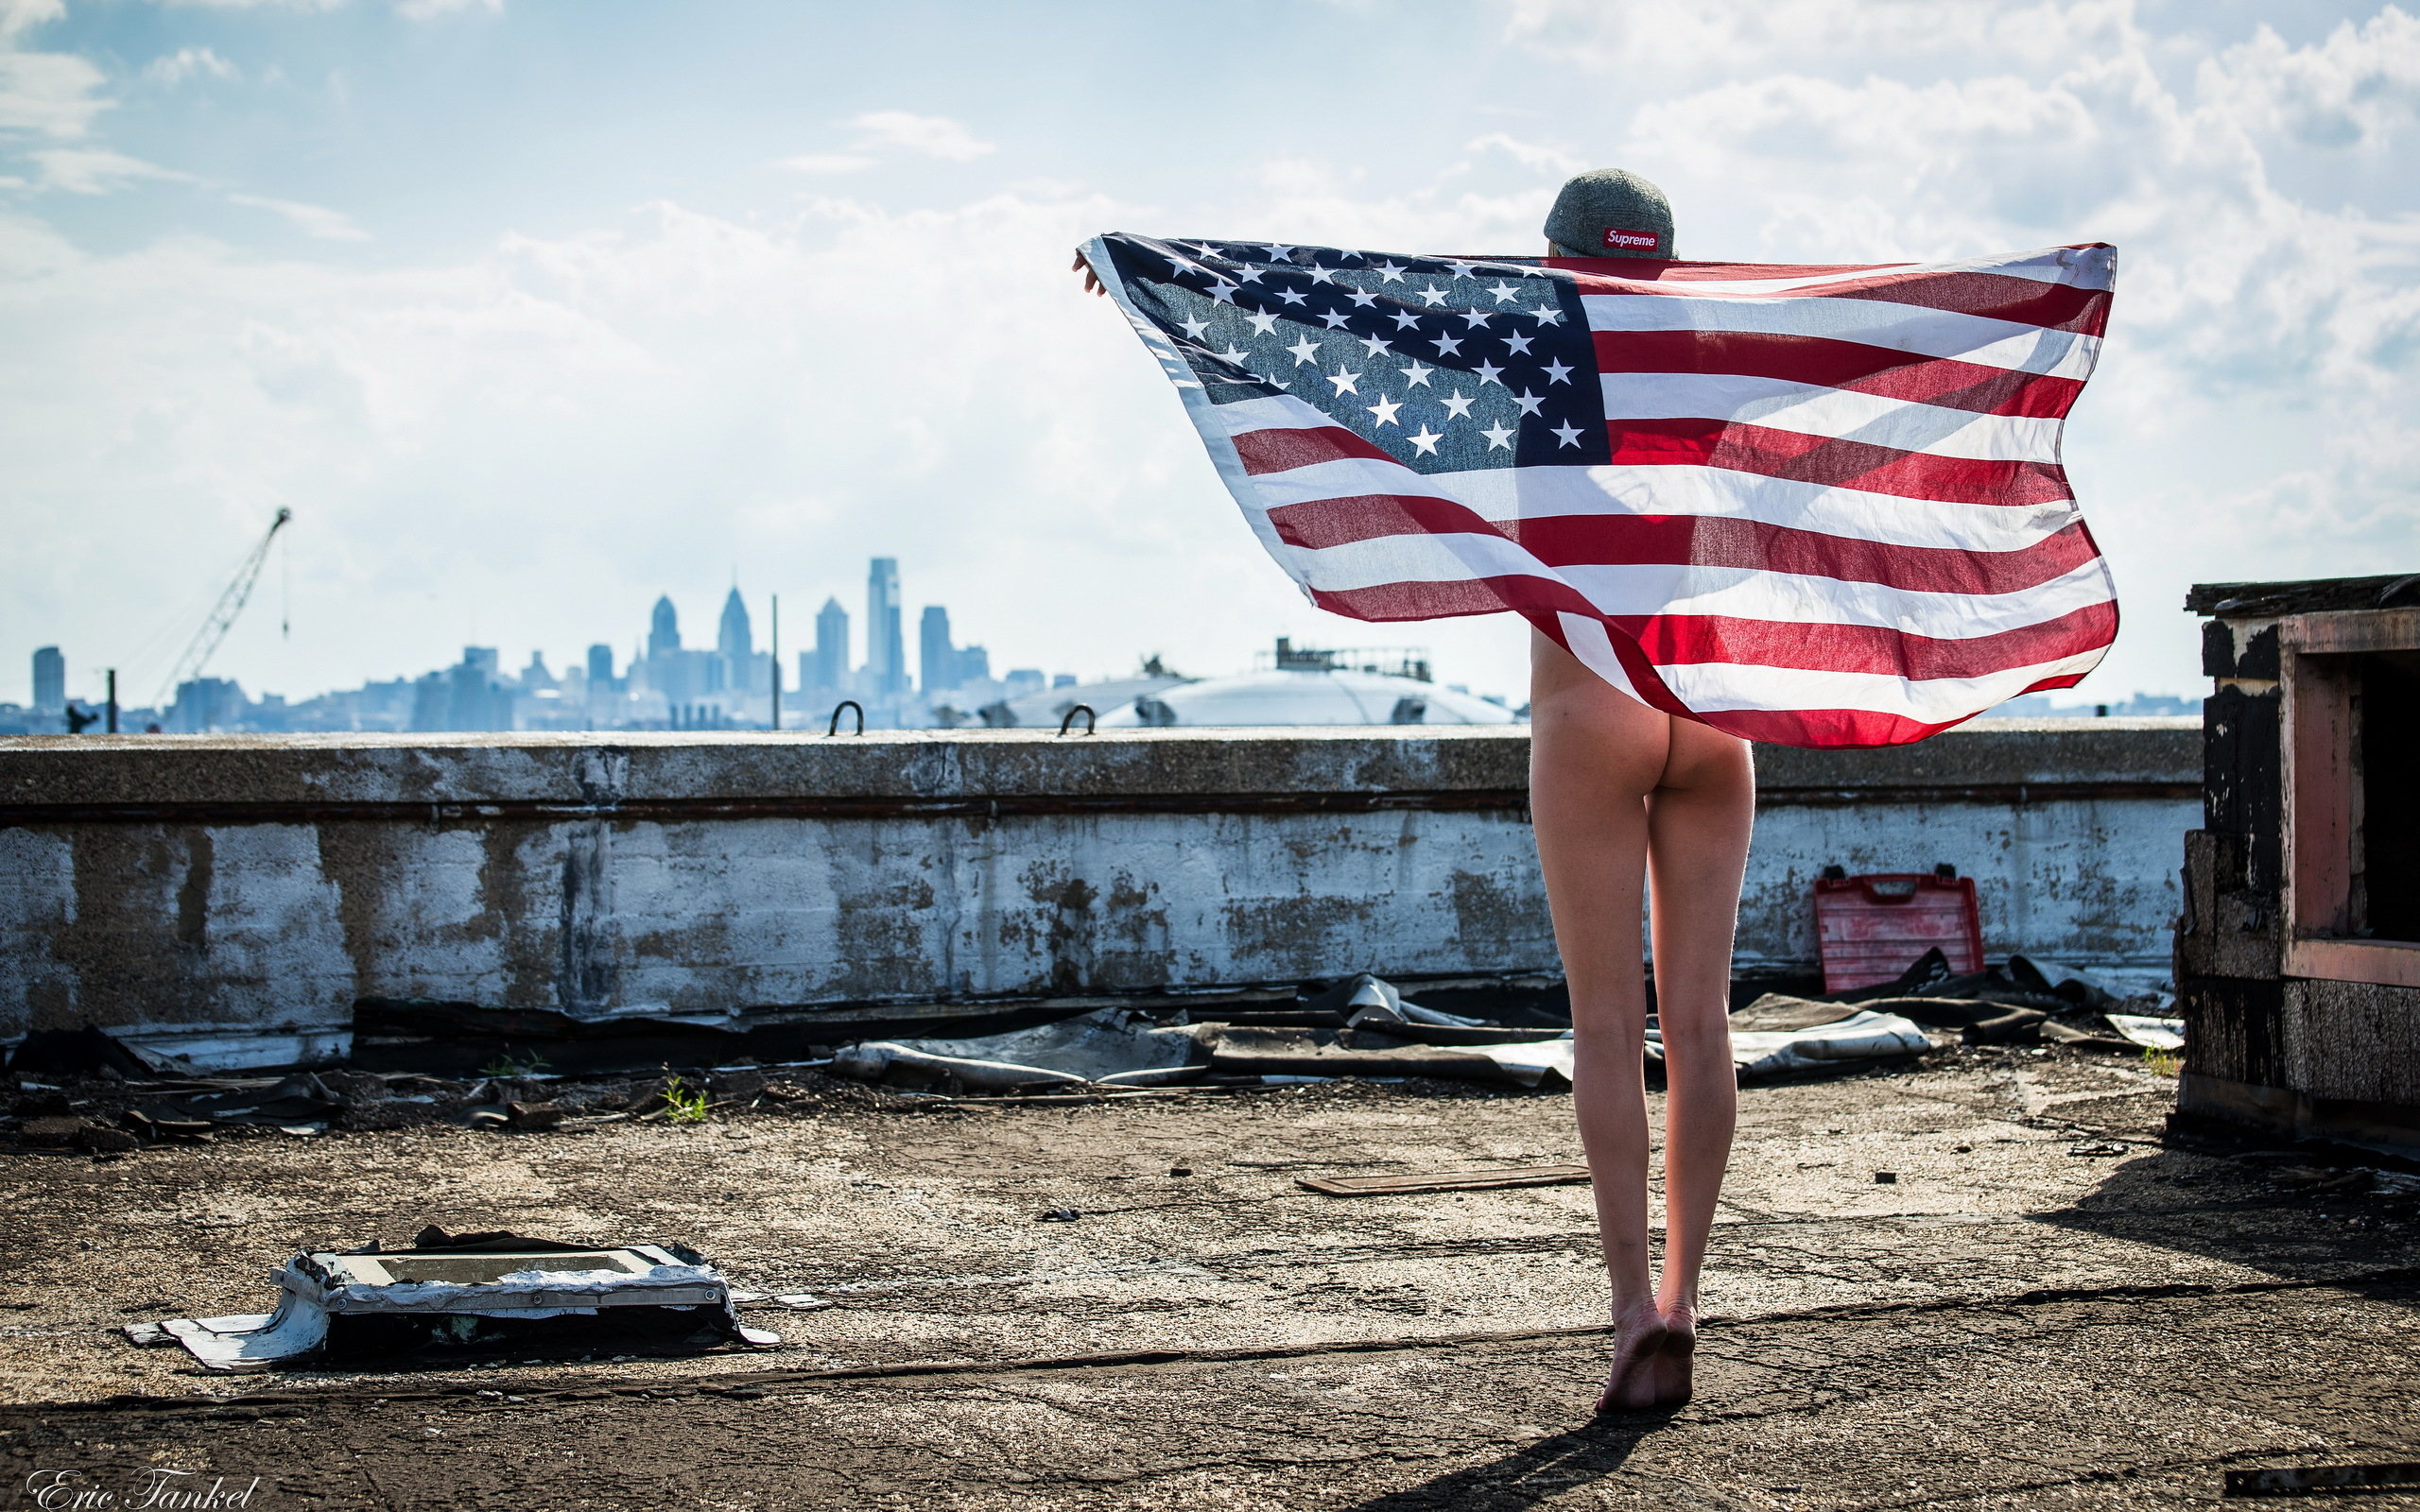 Good Girl naked with american flag with